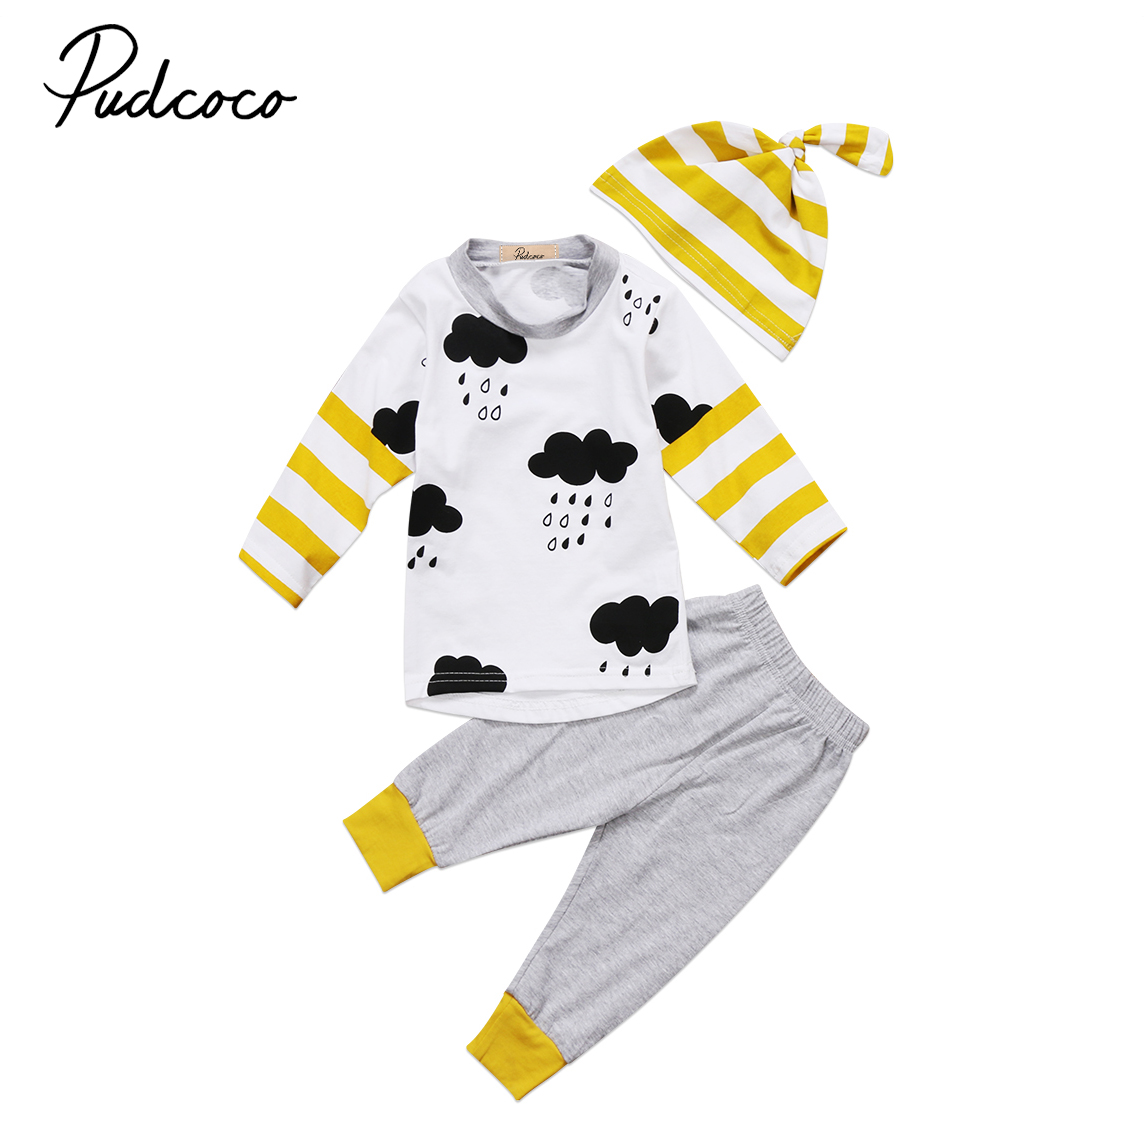 Cute Newborn Kids Baby Boy Girl 3Pcs Stripe Print Outfits Tops T shirt Long Pants Hat Clothes Set M